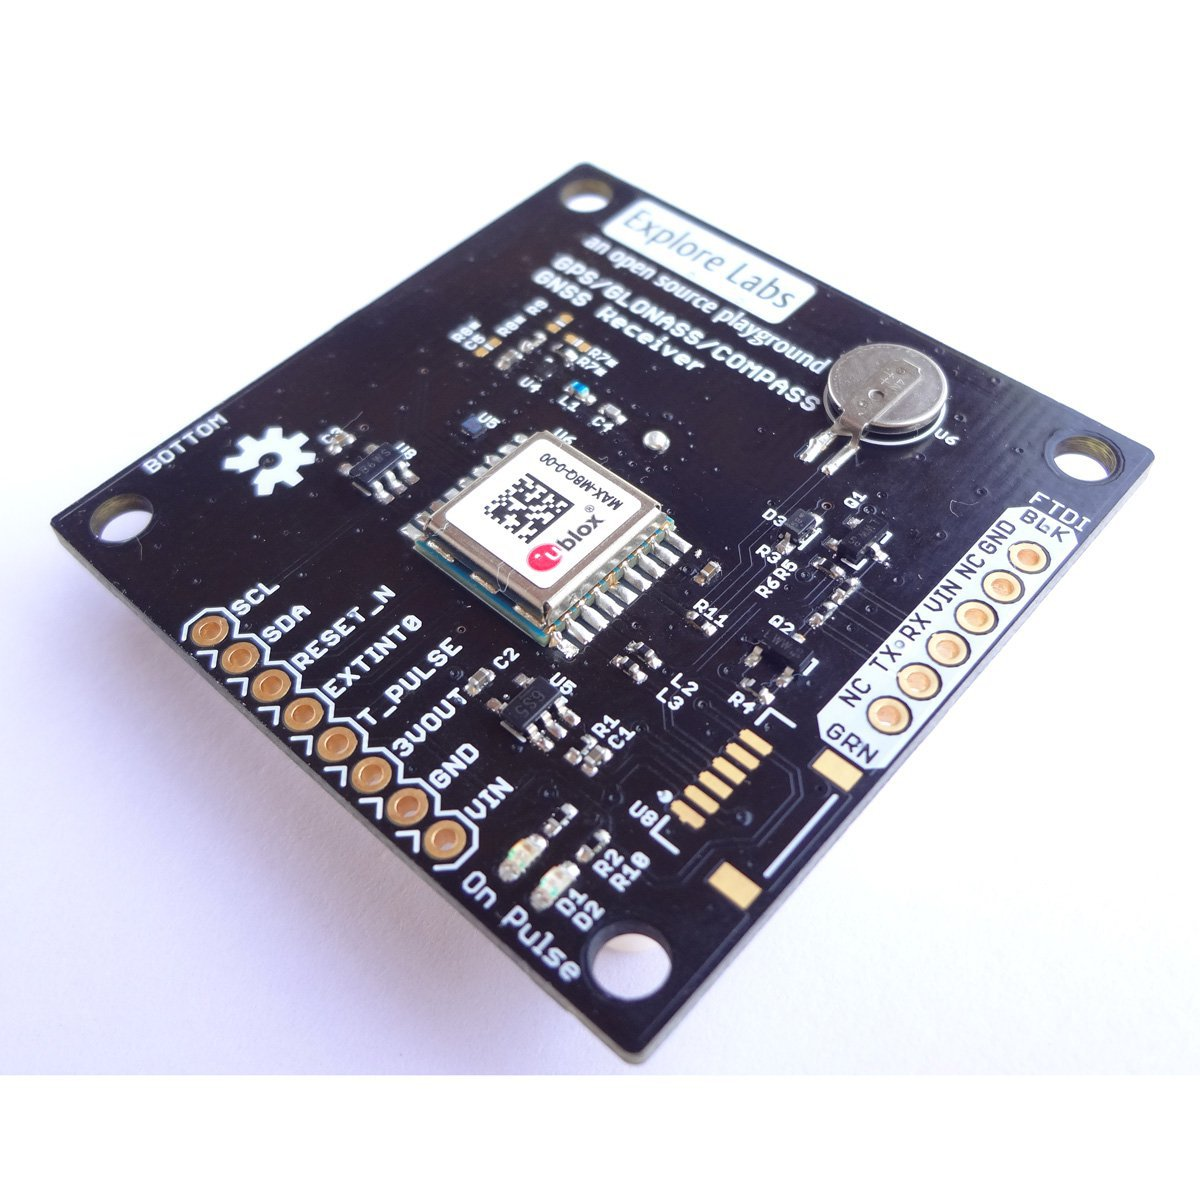 GPS Receiver - ublox MAX-M8Q (72 Channel) from Explore Labs